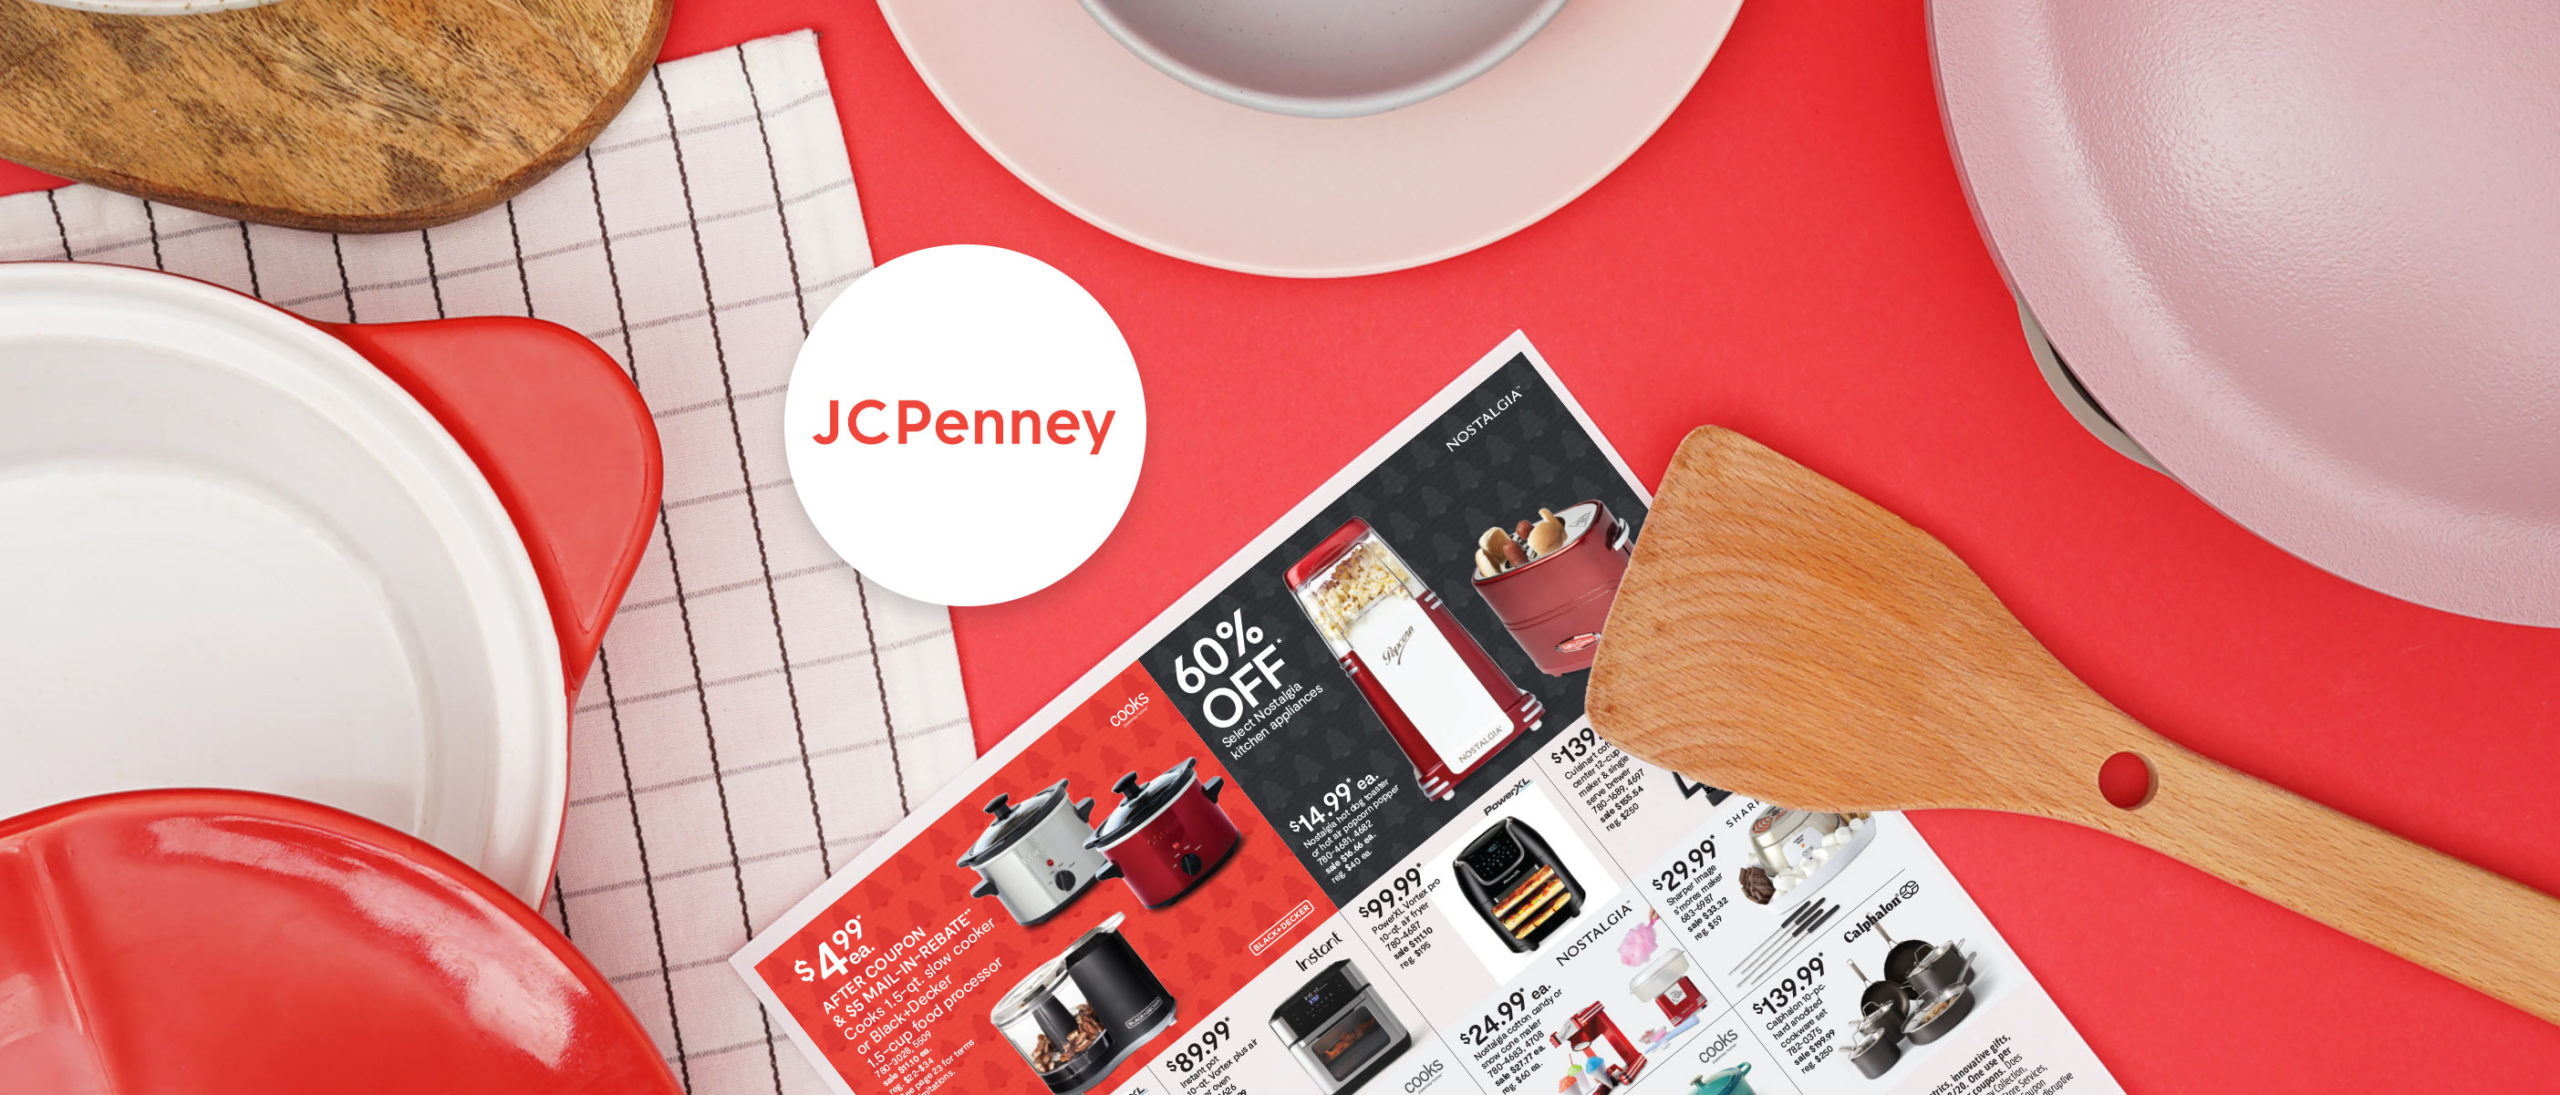 JCPenney flyer on red background surrounded by cooking utensils